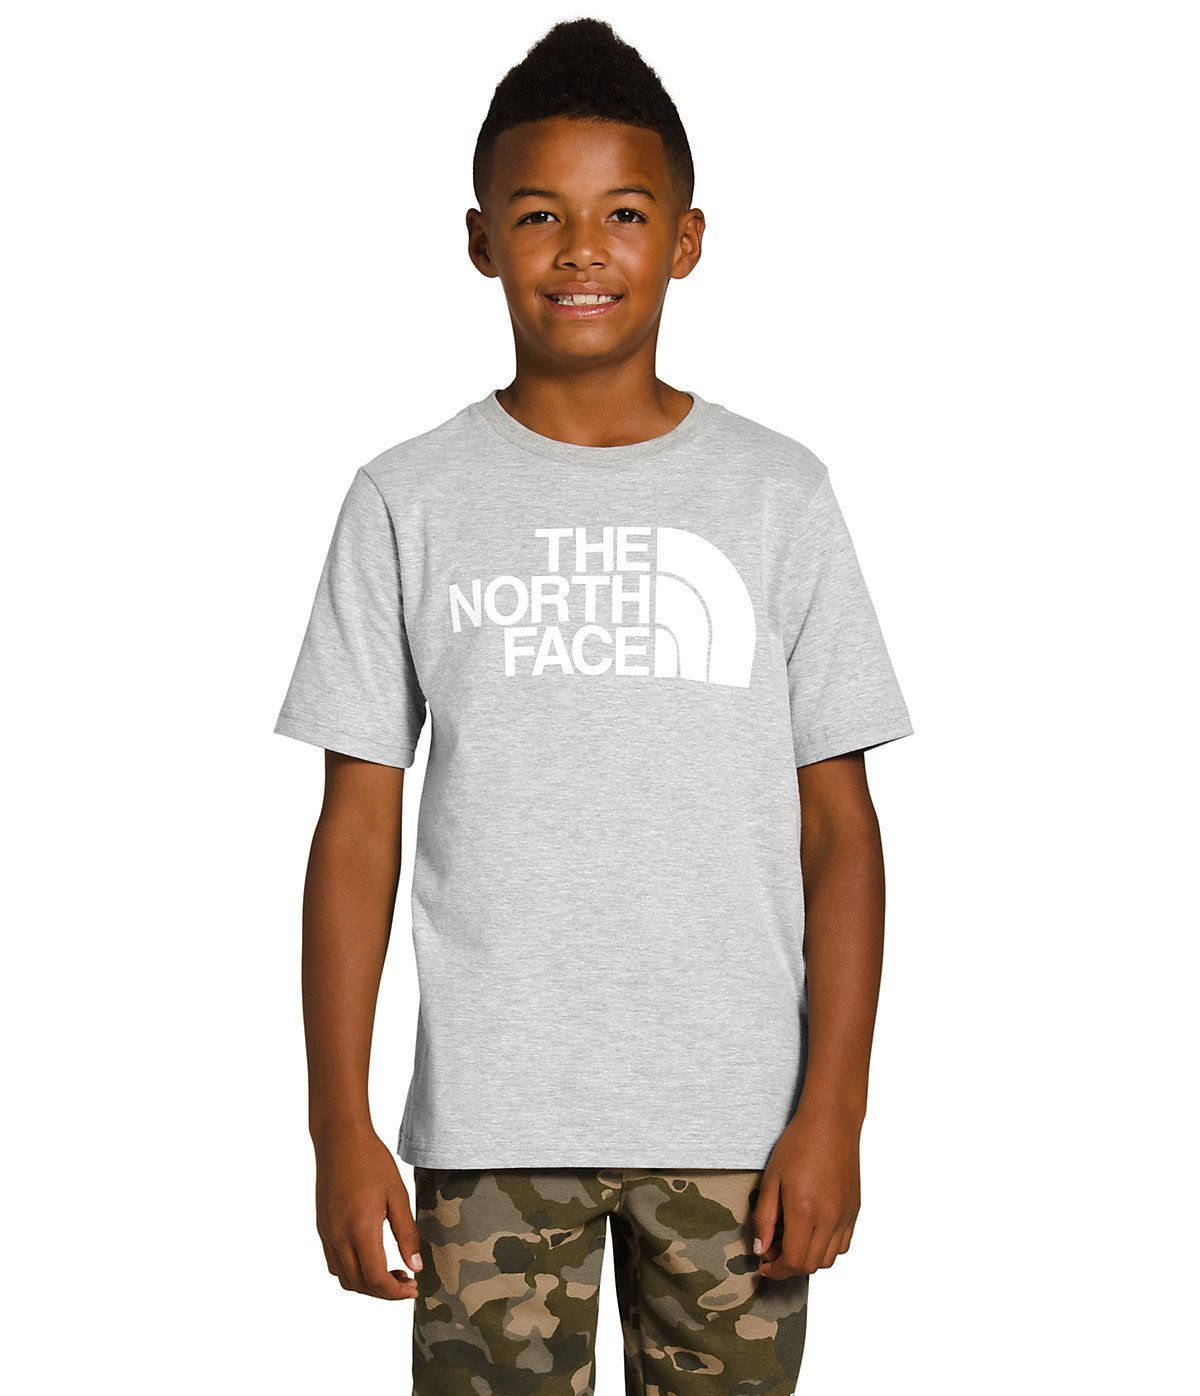 The North Face Boys Short Sleeve Half Dome T Shirt The North Face Shirts Strong Women Fitness